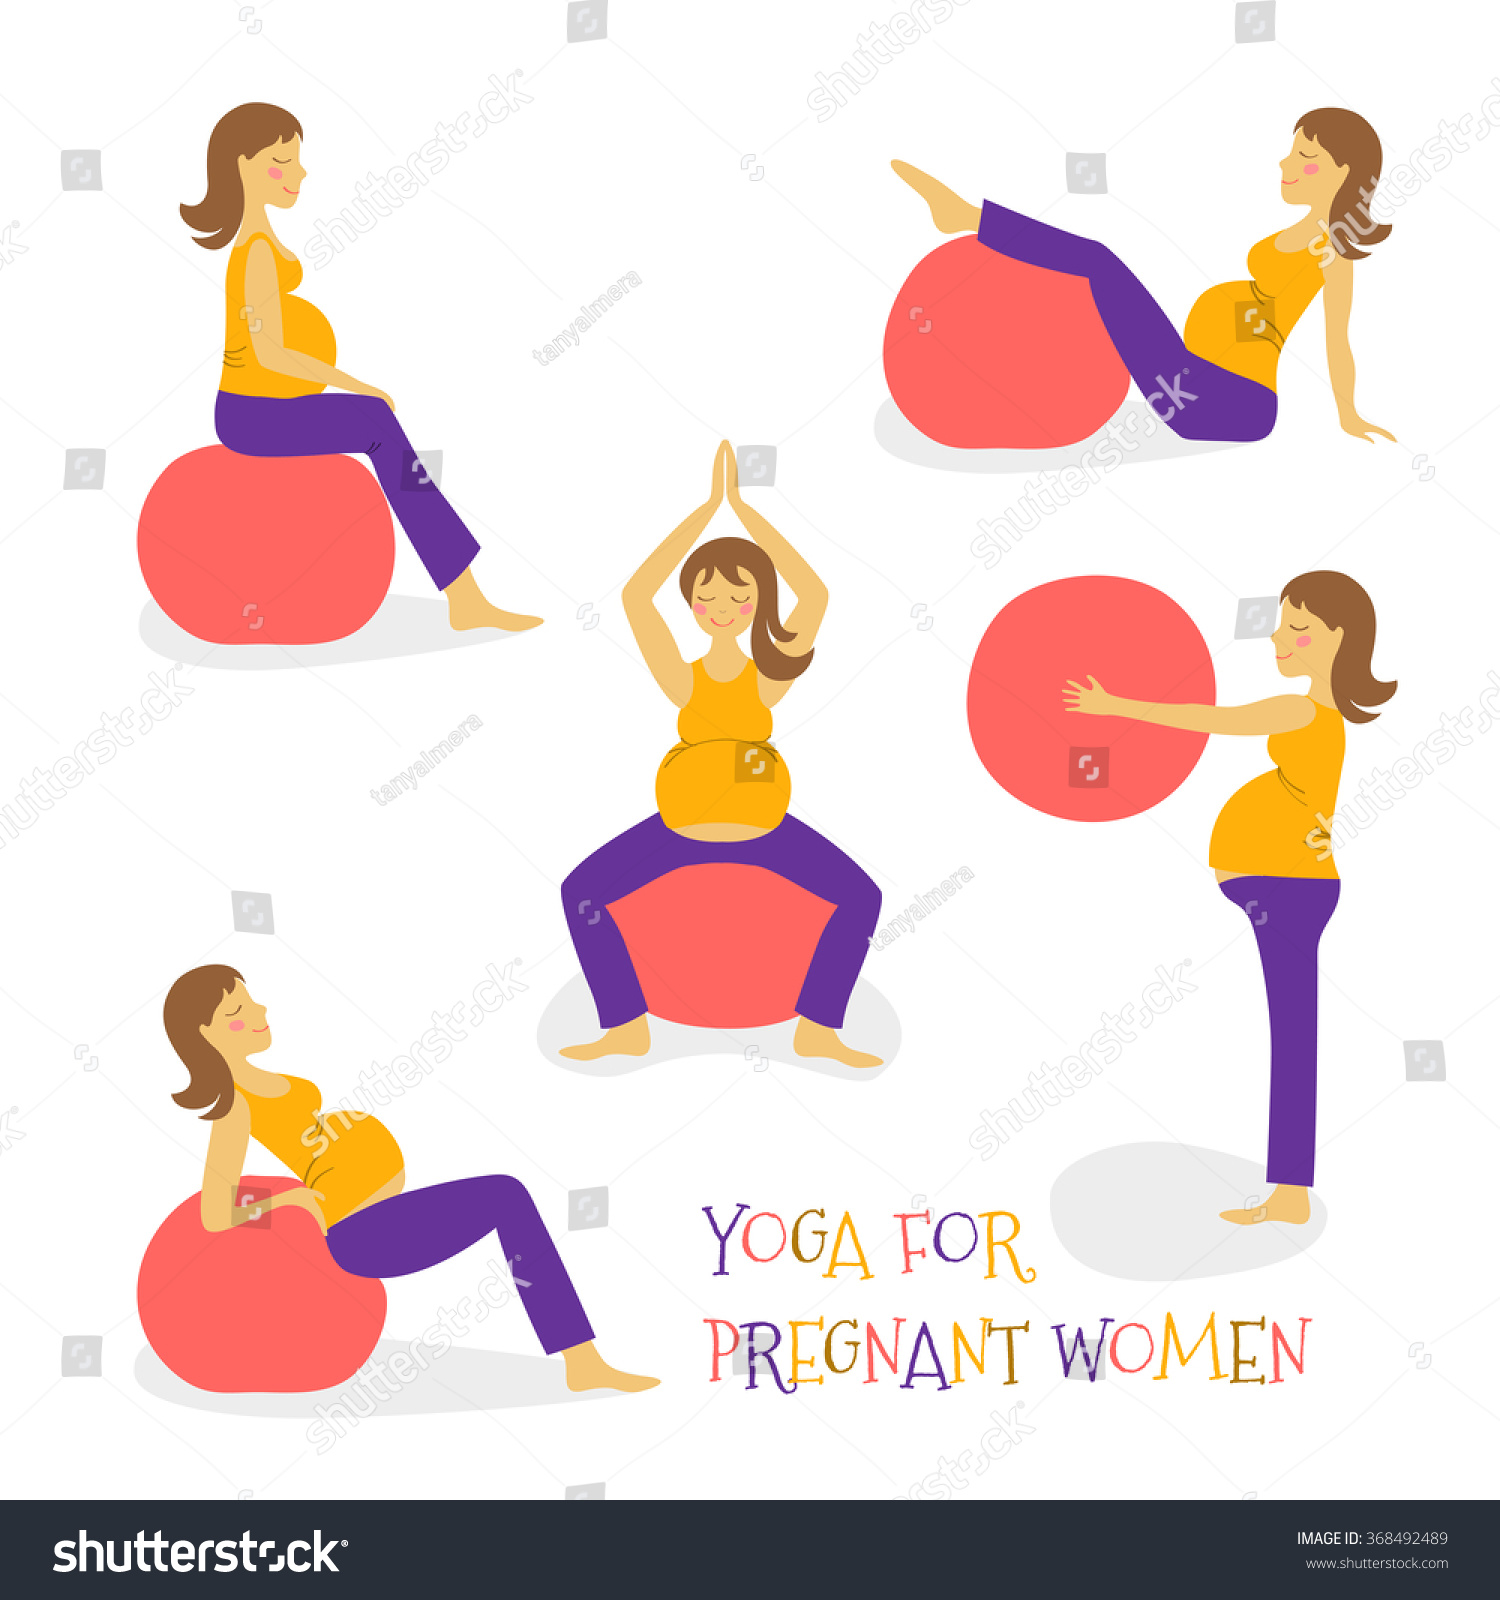 Balance Ball Exercises For Pregnancy: Set Cartoon Hand Icon Fitness Yoga For Pregnant Woman On